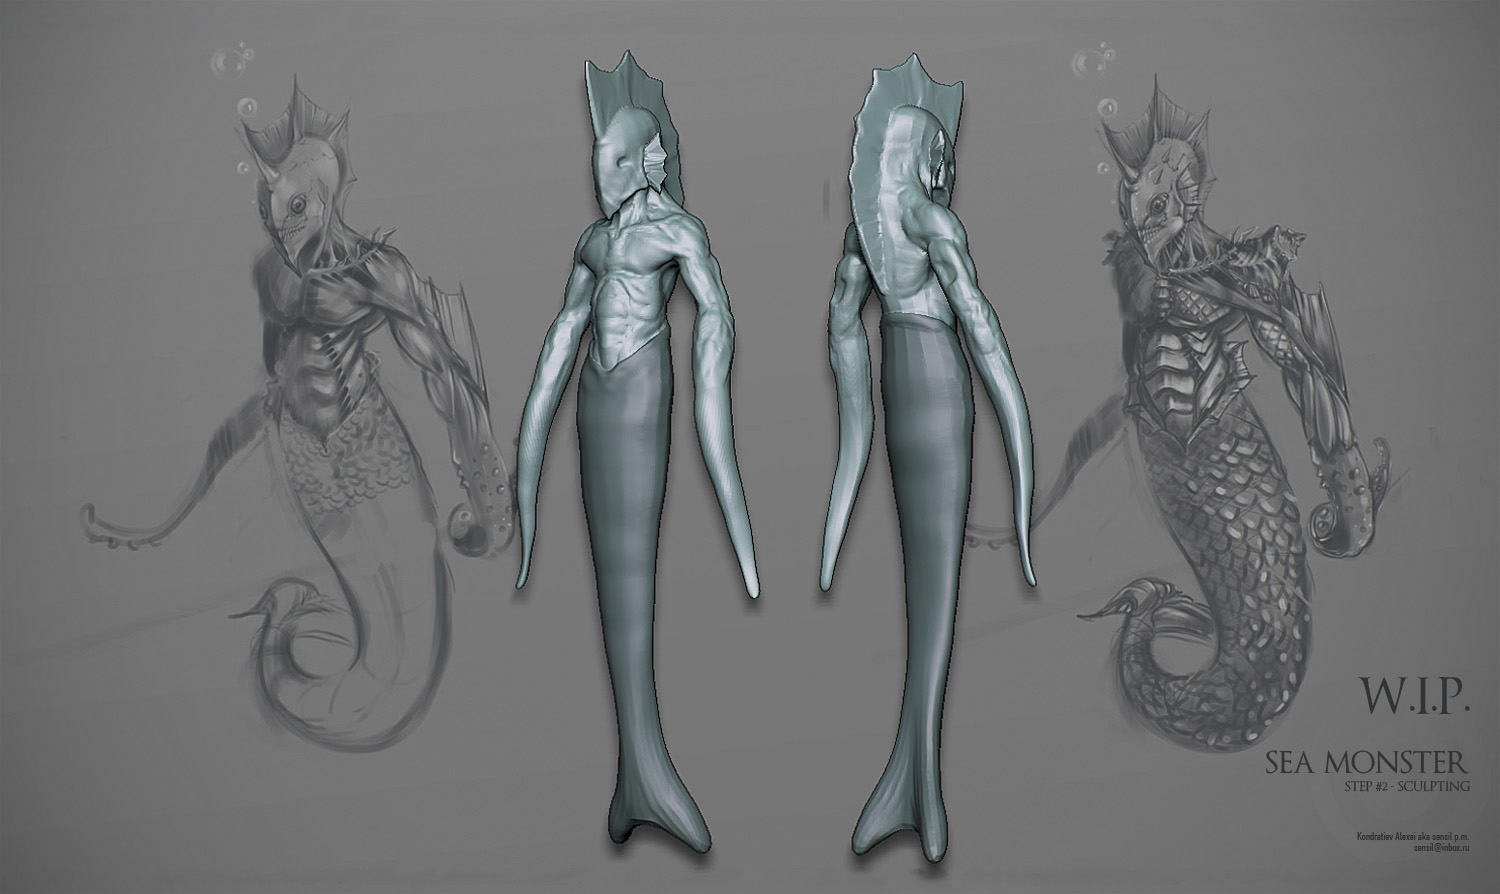 sea monster_concept02.jpg